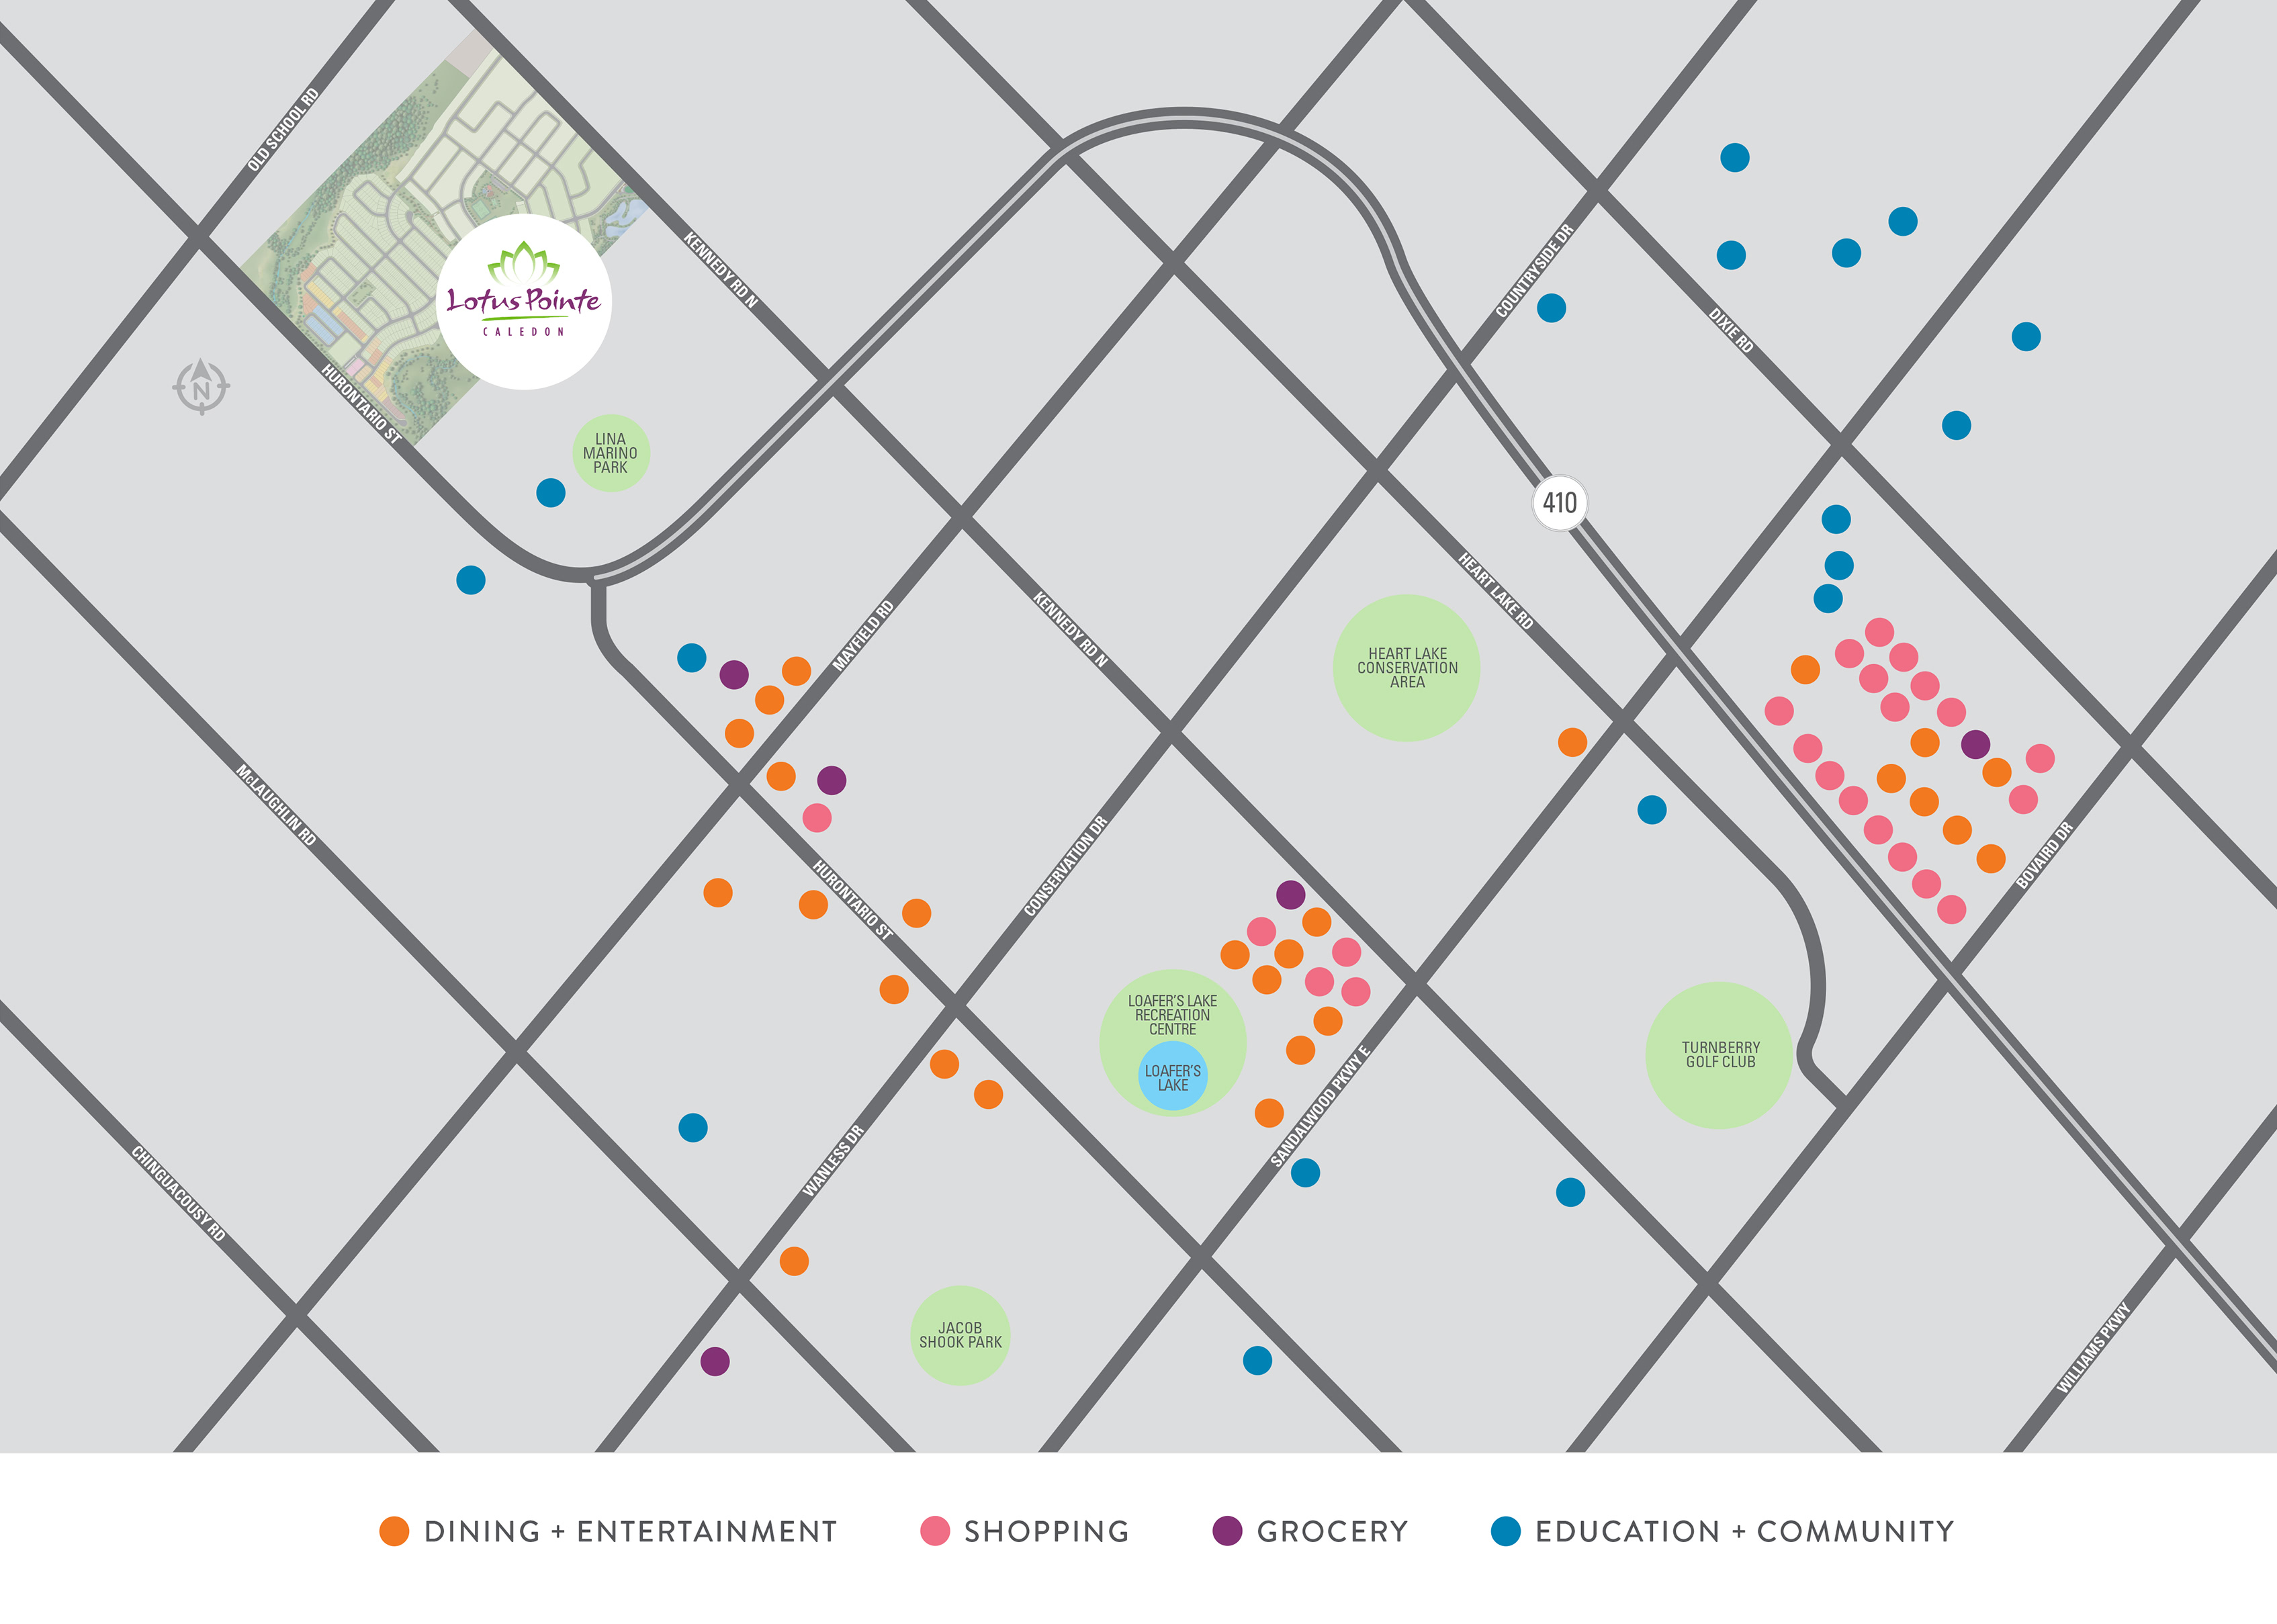 Lotus Pointe Amenities Map